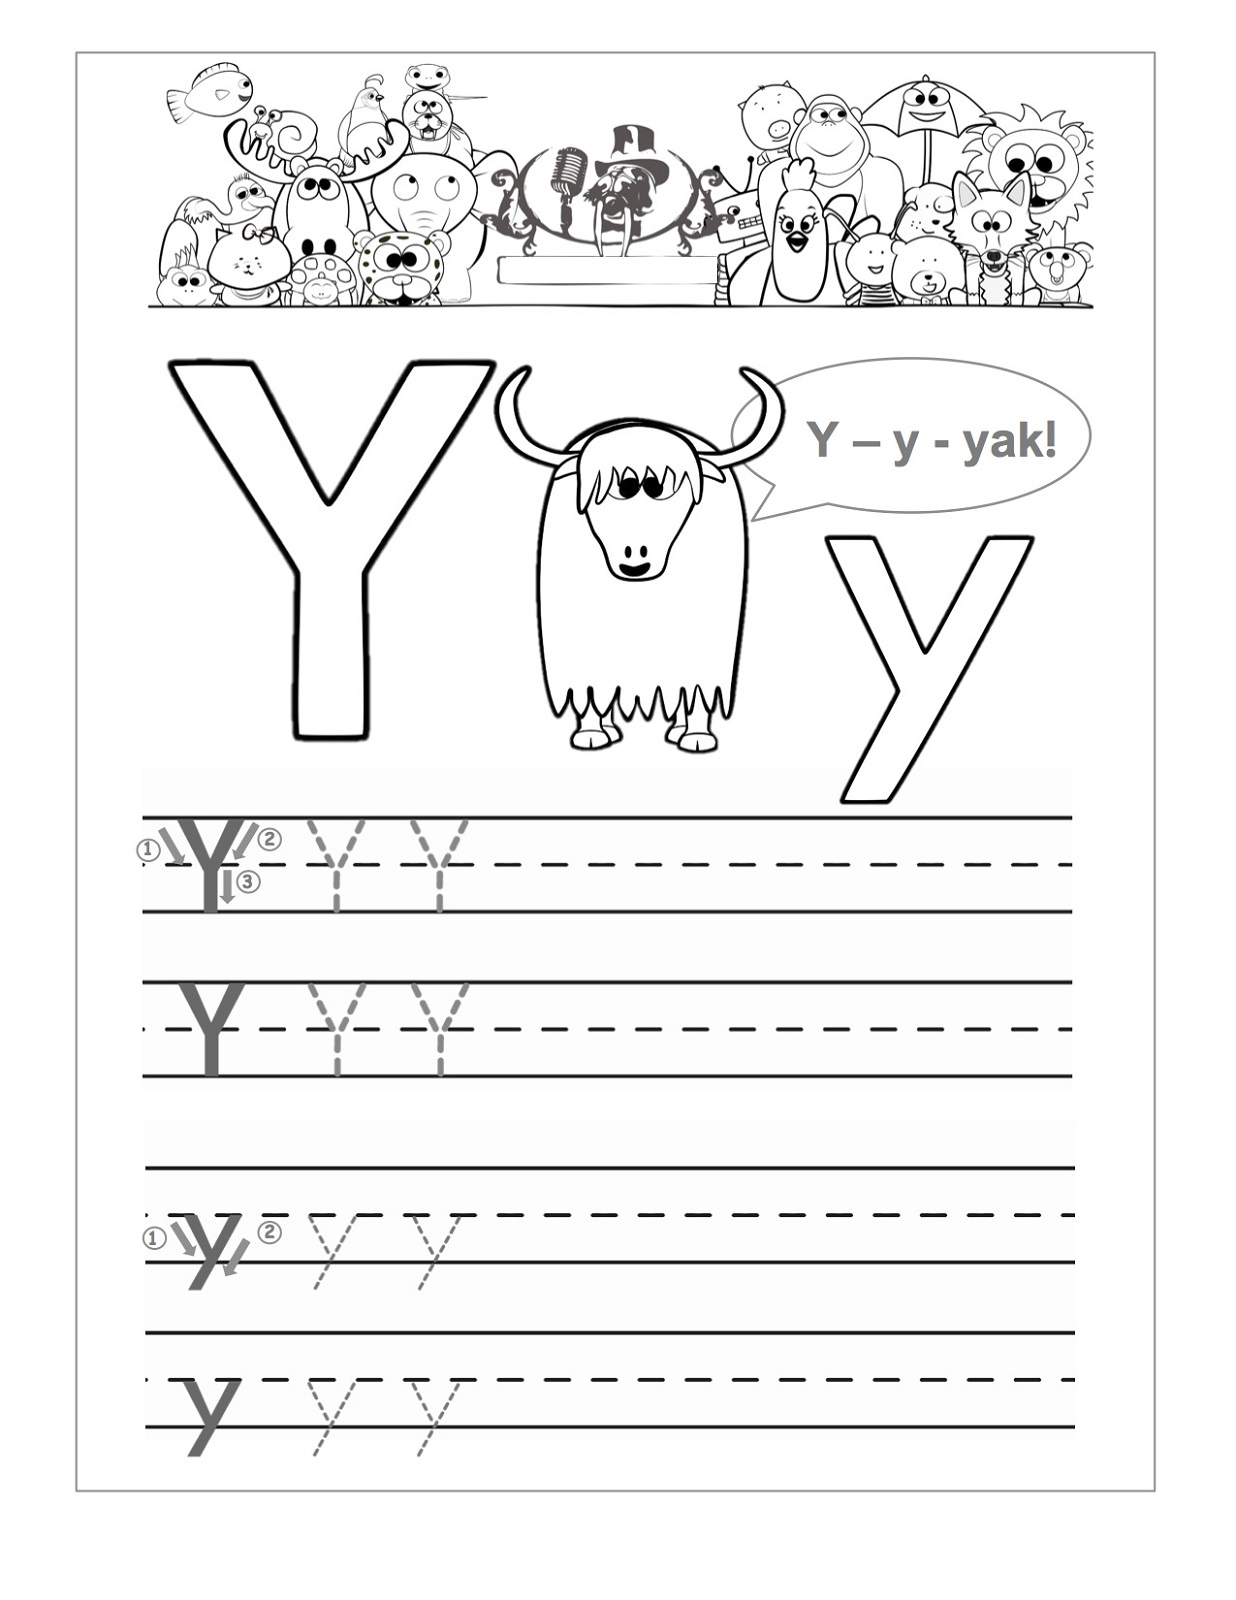 Worksheets Letter Y Worksheet letter y worksheets to print activity shelter worksheet for kids